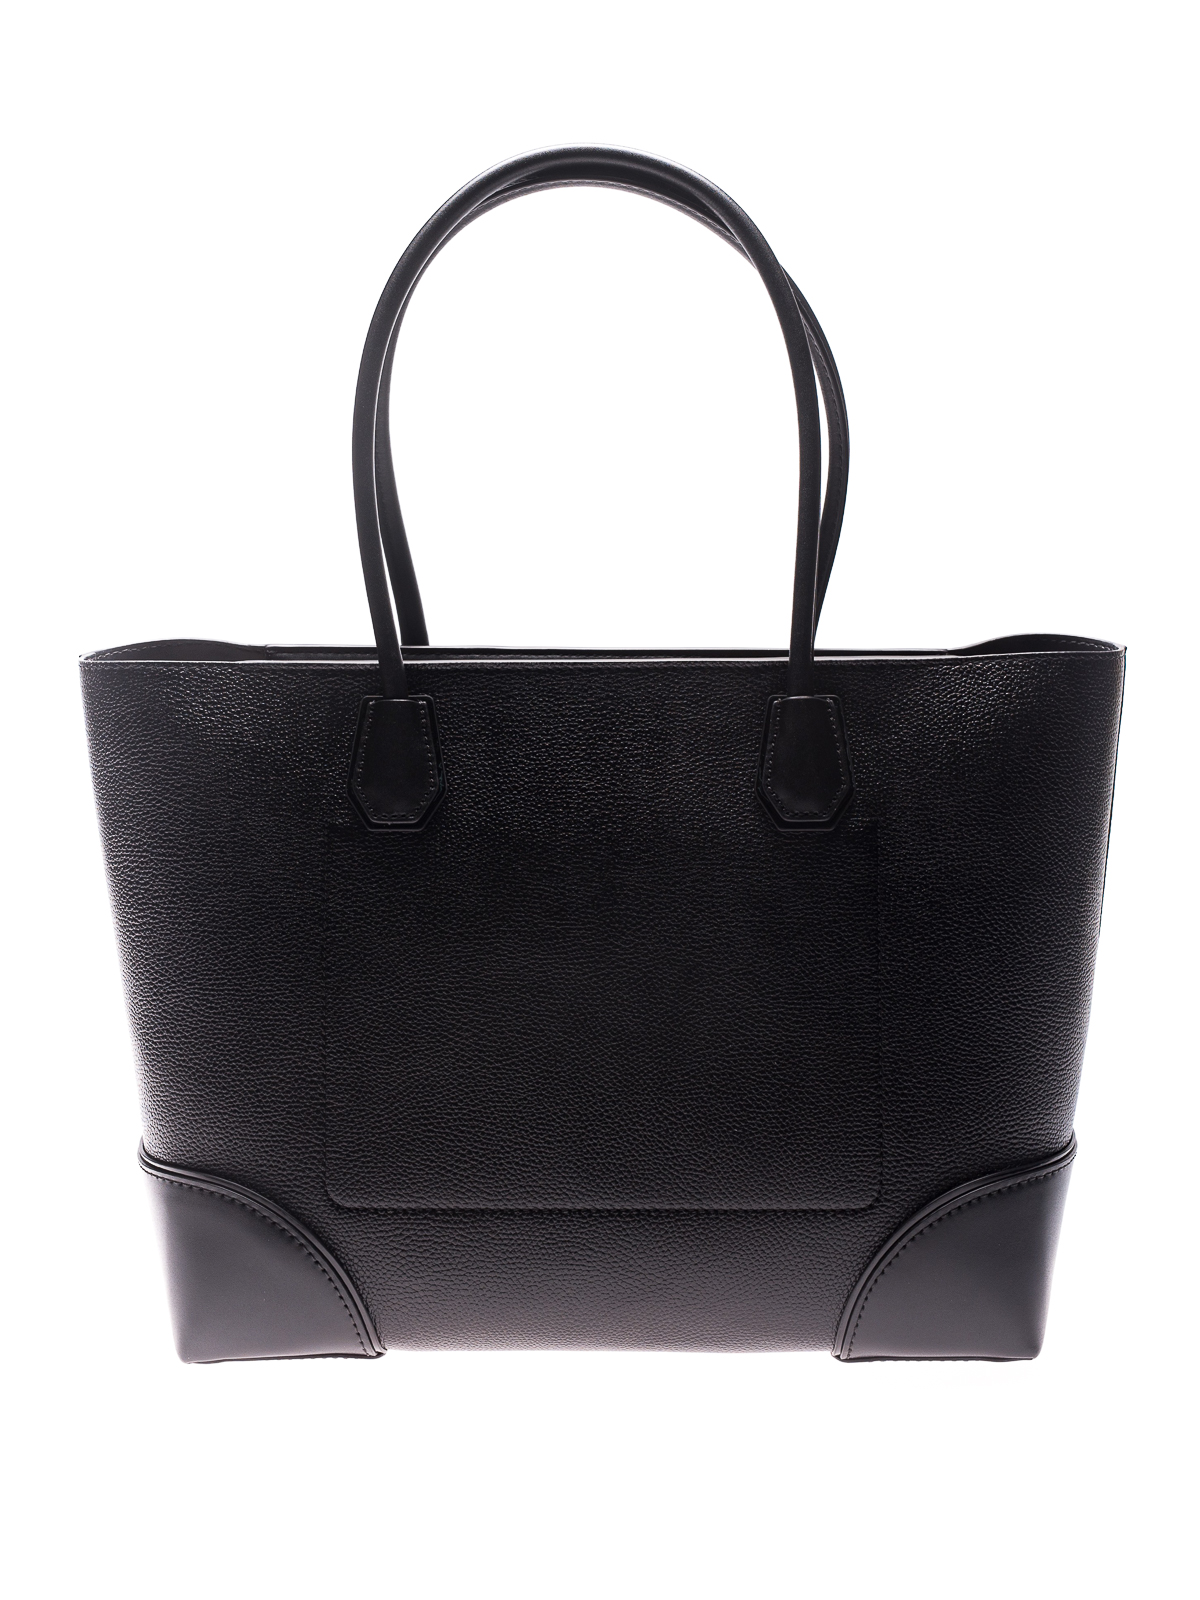 michael kors tote mercer gallery nera con zip shopper. Black Bedroom Furniture Sets. Home Design Ideas